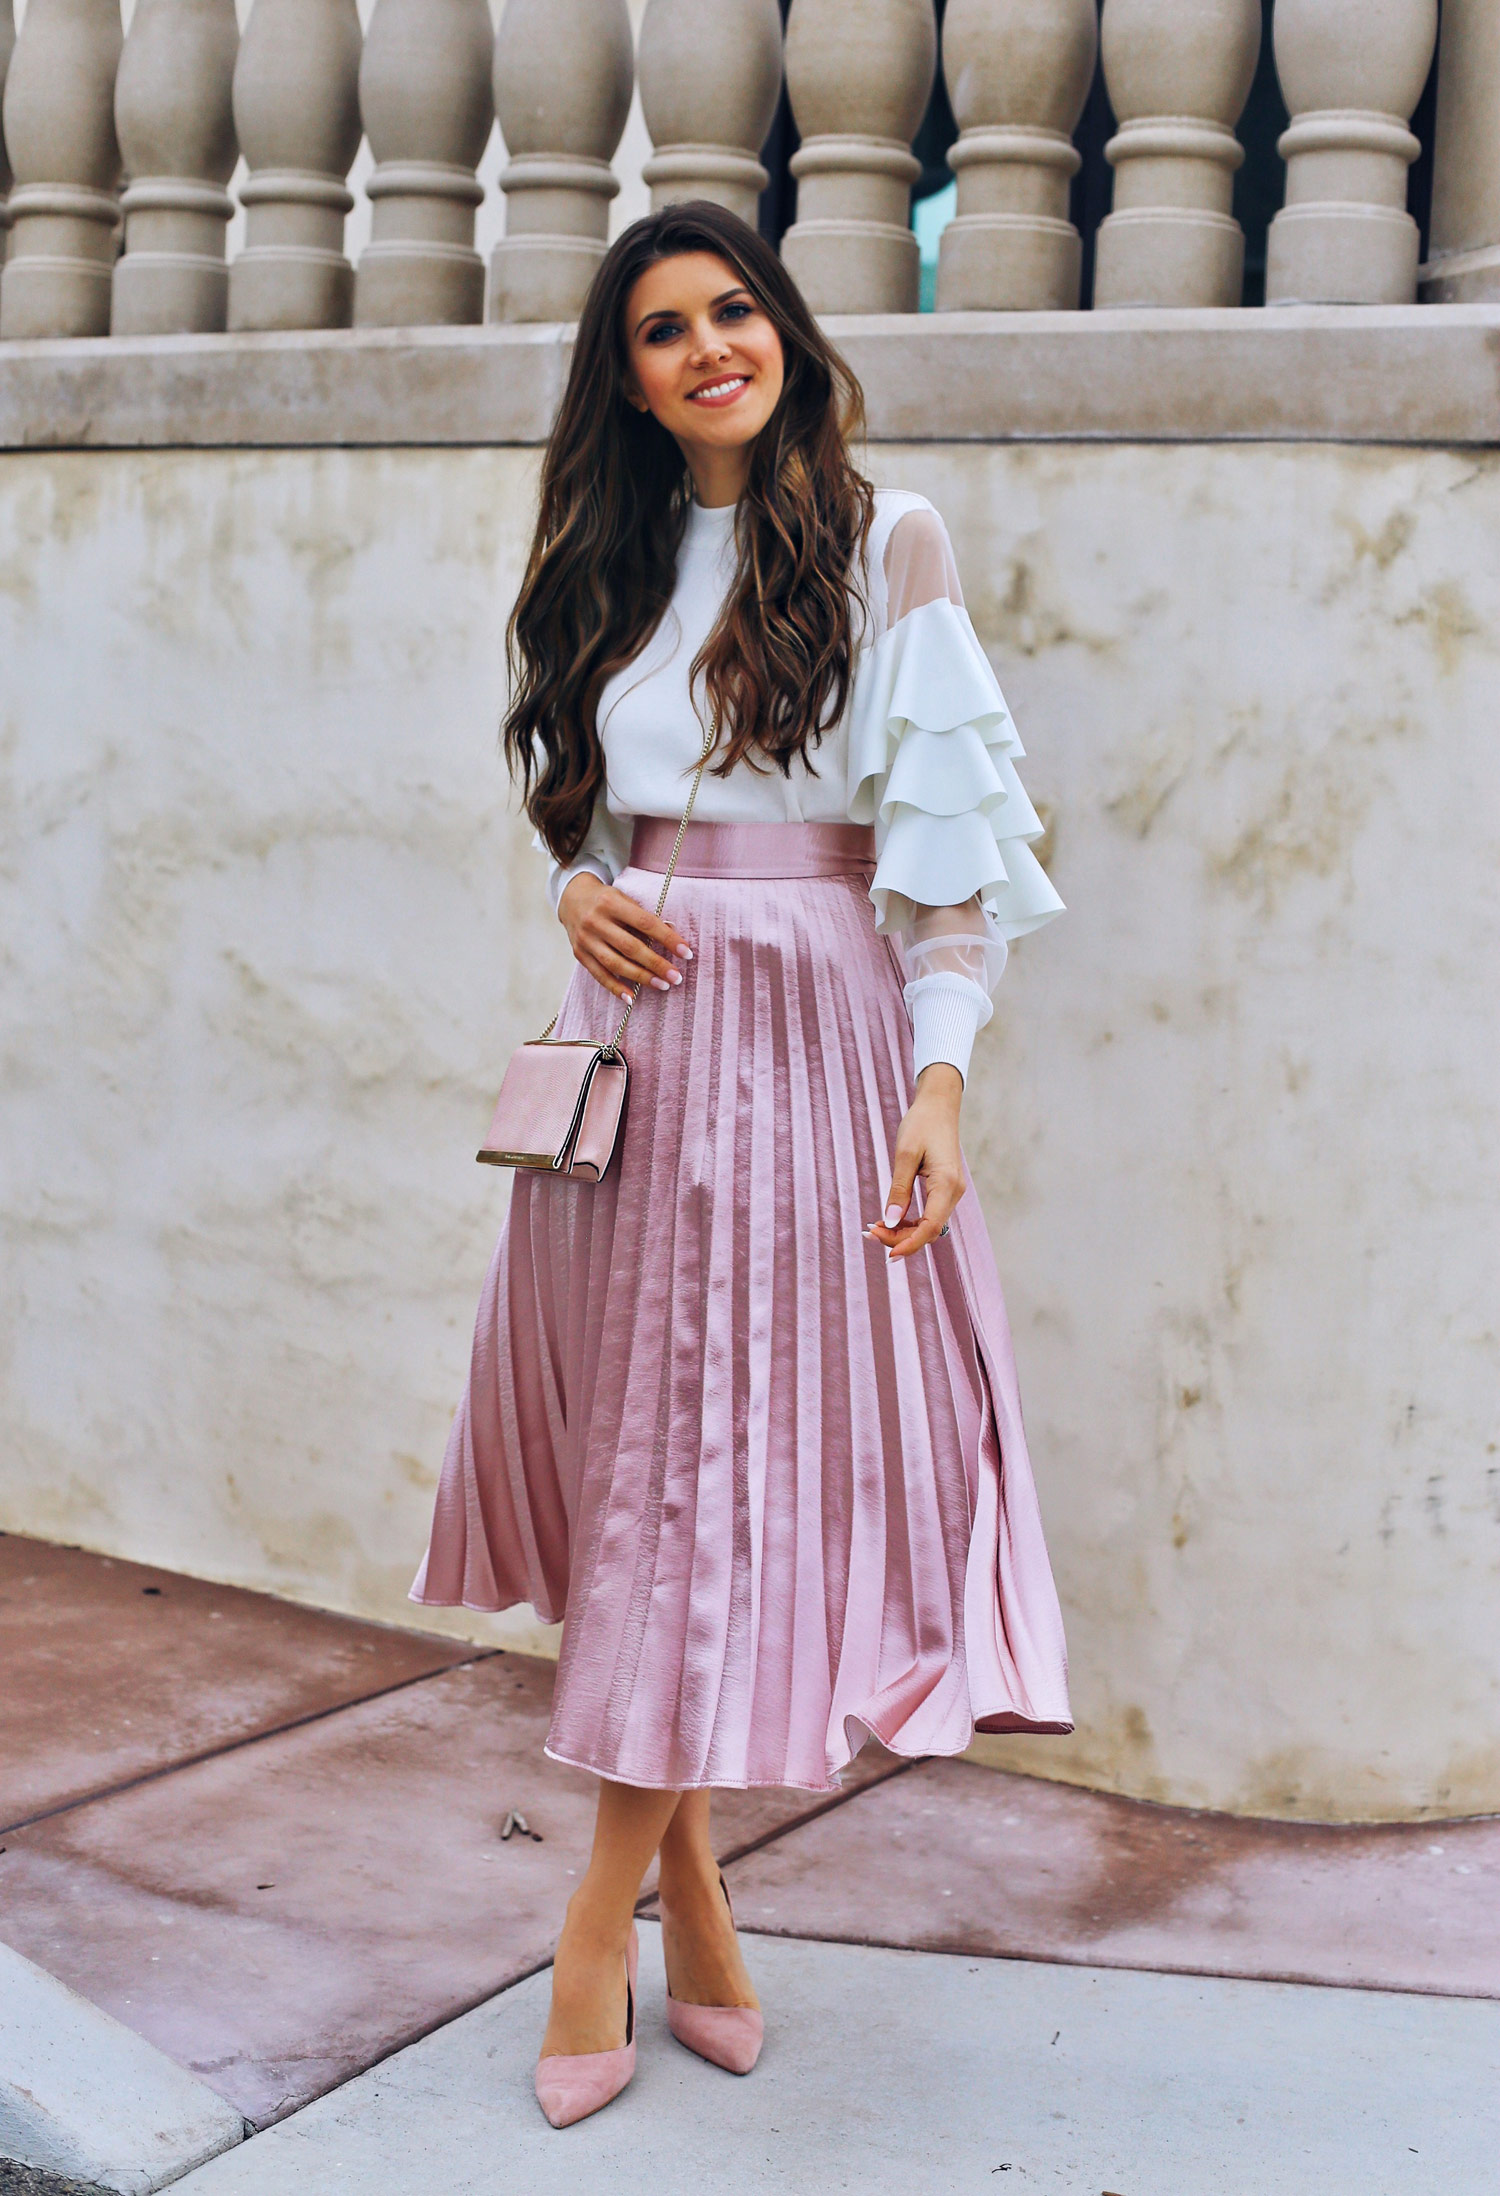 Fashion and lifestyle blogger Adelina Perrin of The Charming Olive wearing Chicwish tiered sleeve top and pink pleated skirt